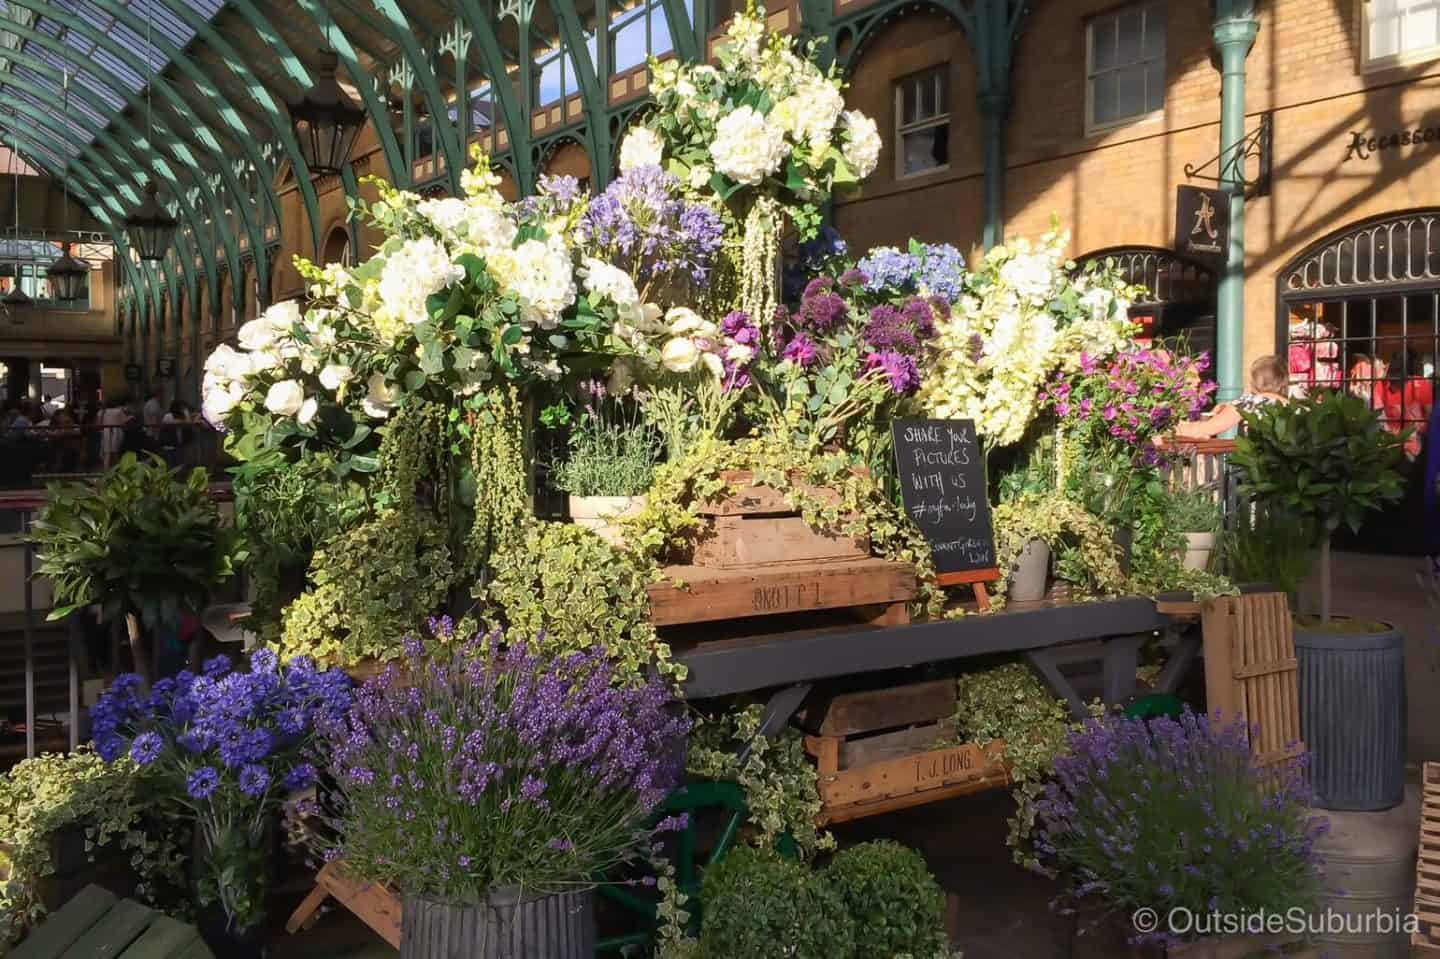 Visiting Covent Garden – essential guide to where to eat, stay and things to do in Covent Garden